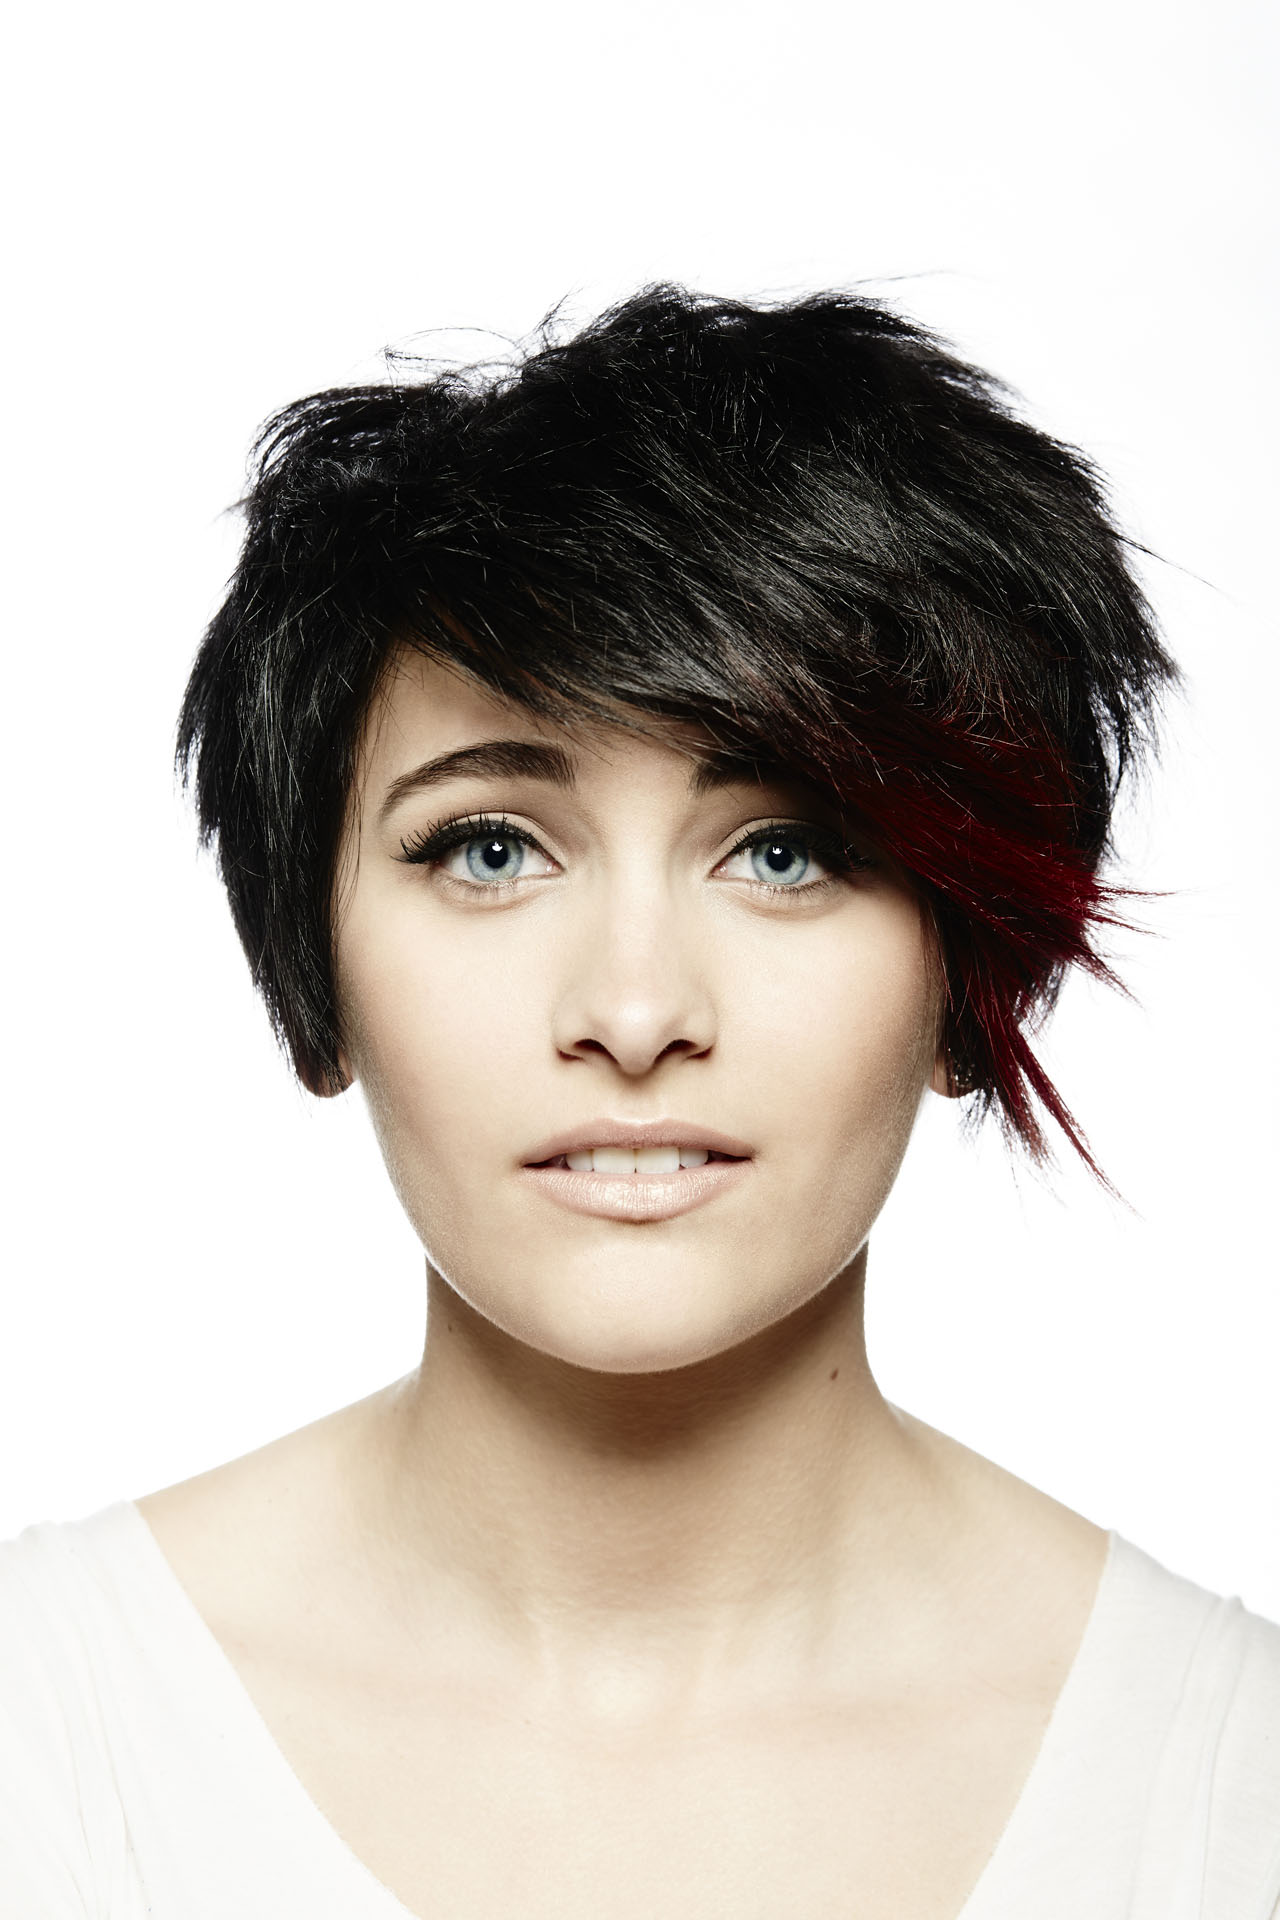 Paris Jackson / Brian Bowen Smith